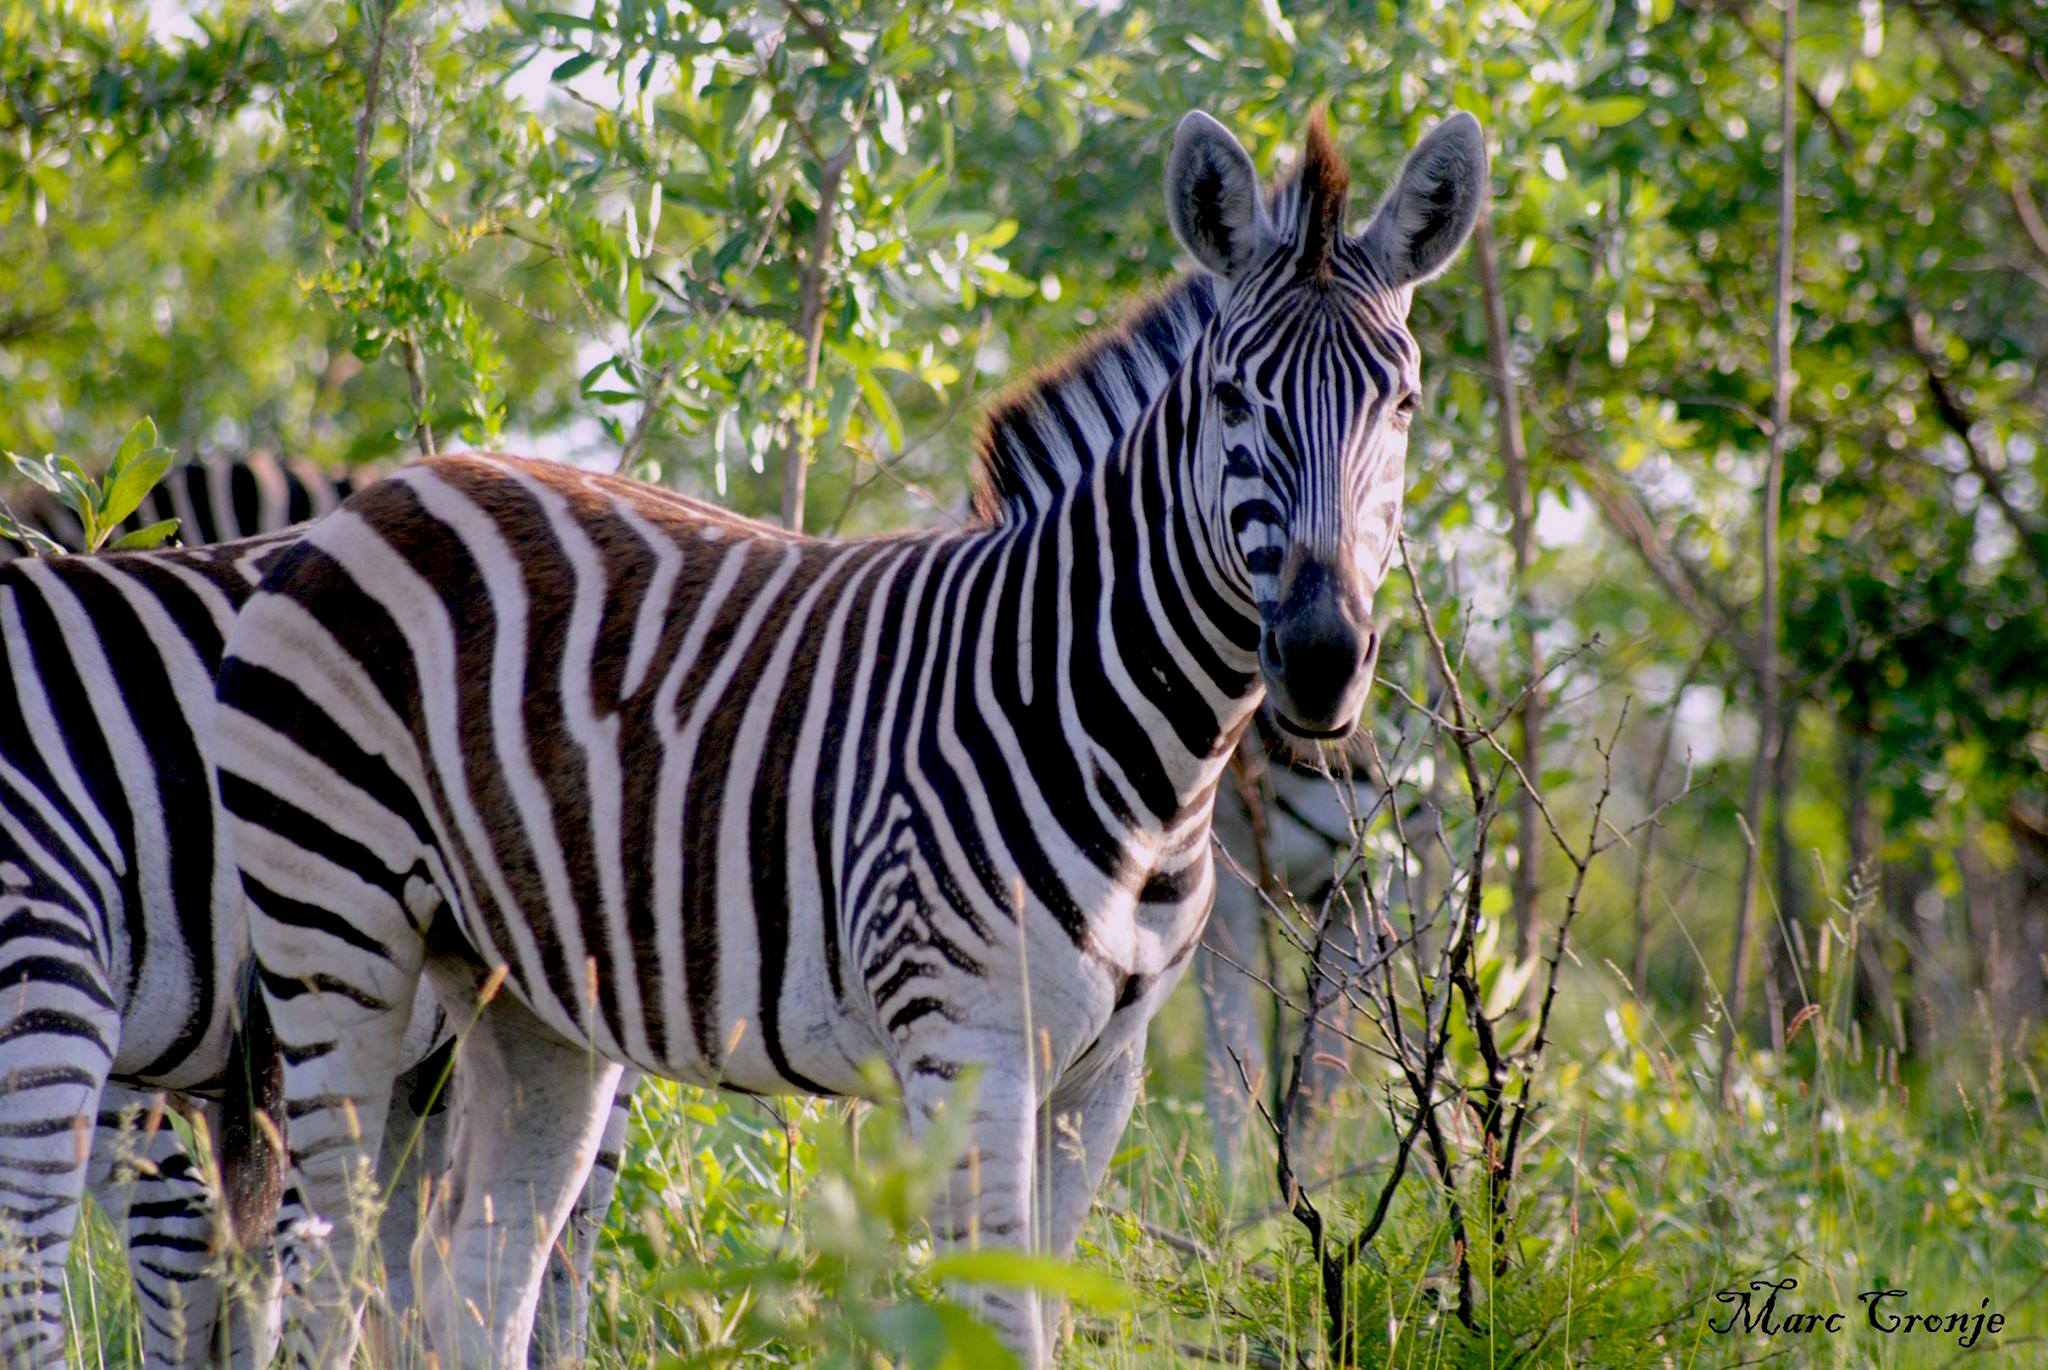 """Zebras communicate with an almost """"barking"""" sound. Plains zebra, Image: ©Marc Cronje, Independent Field guide, African wildlife specialist."""